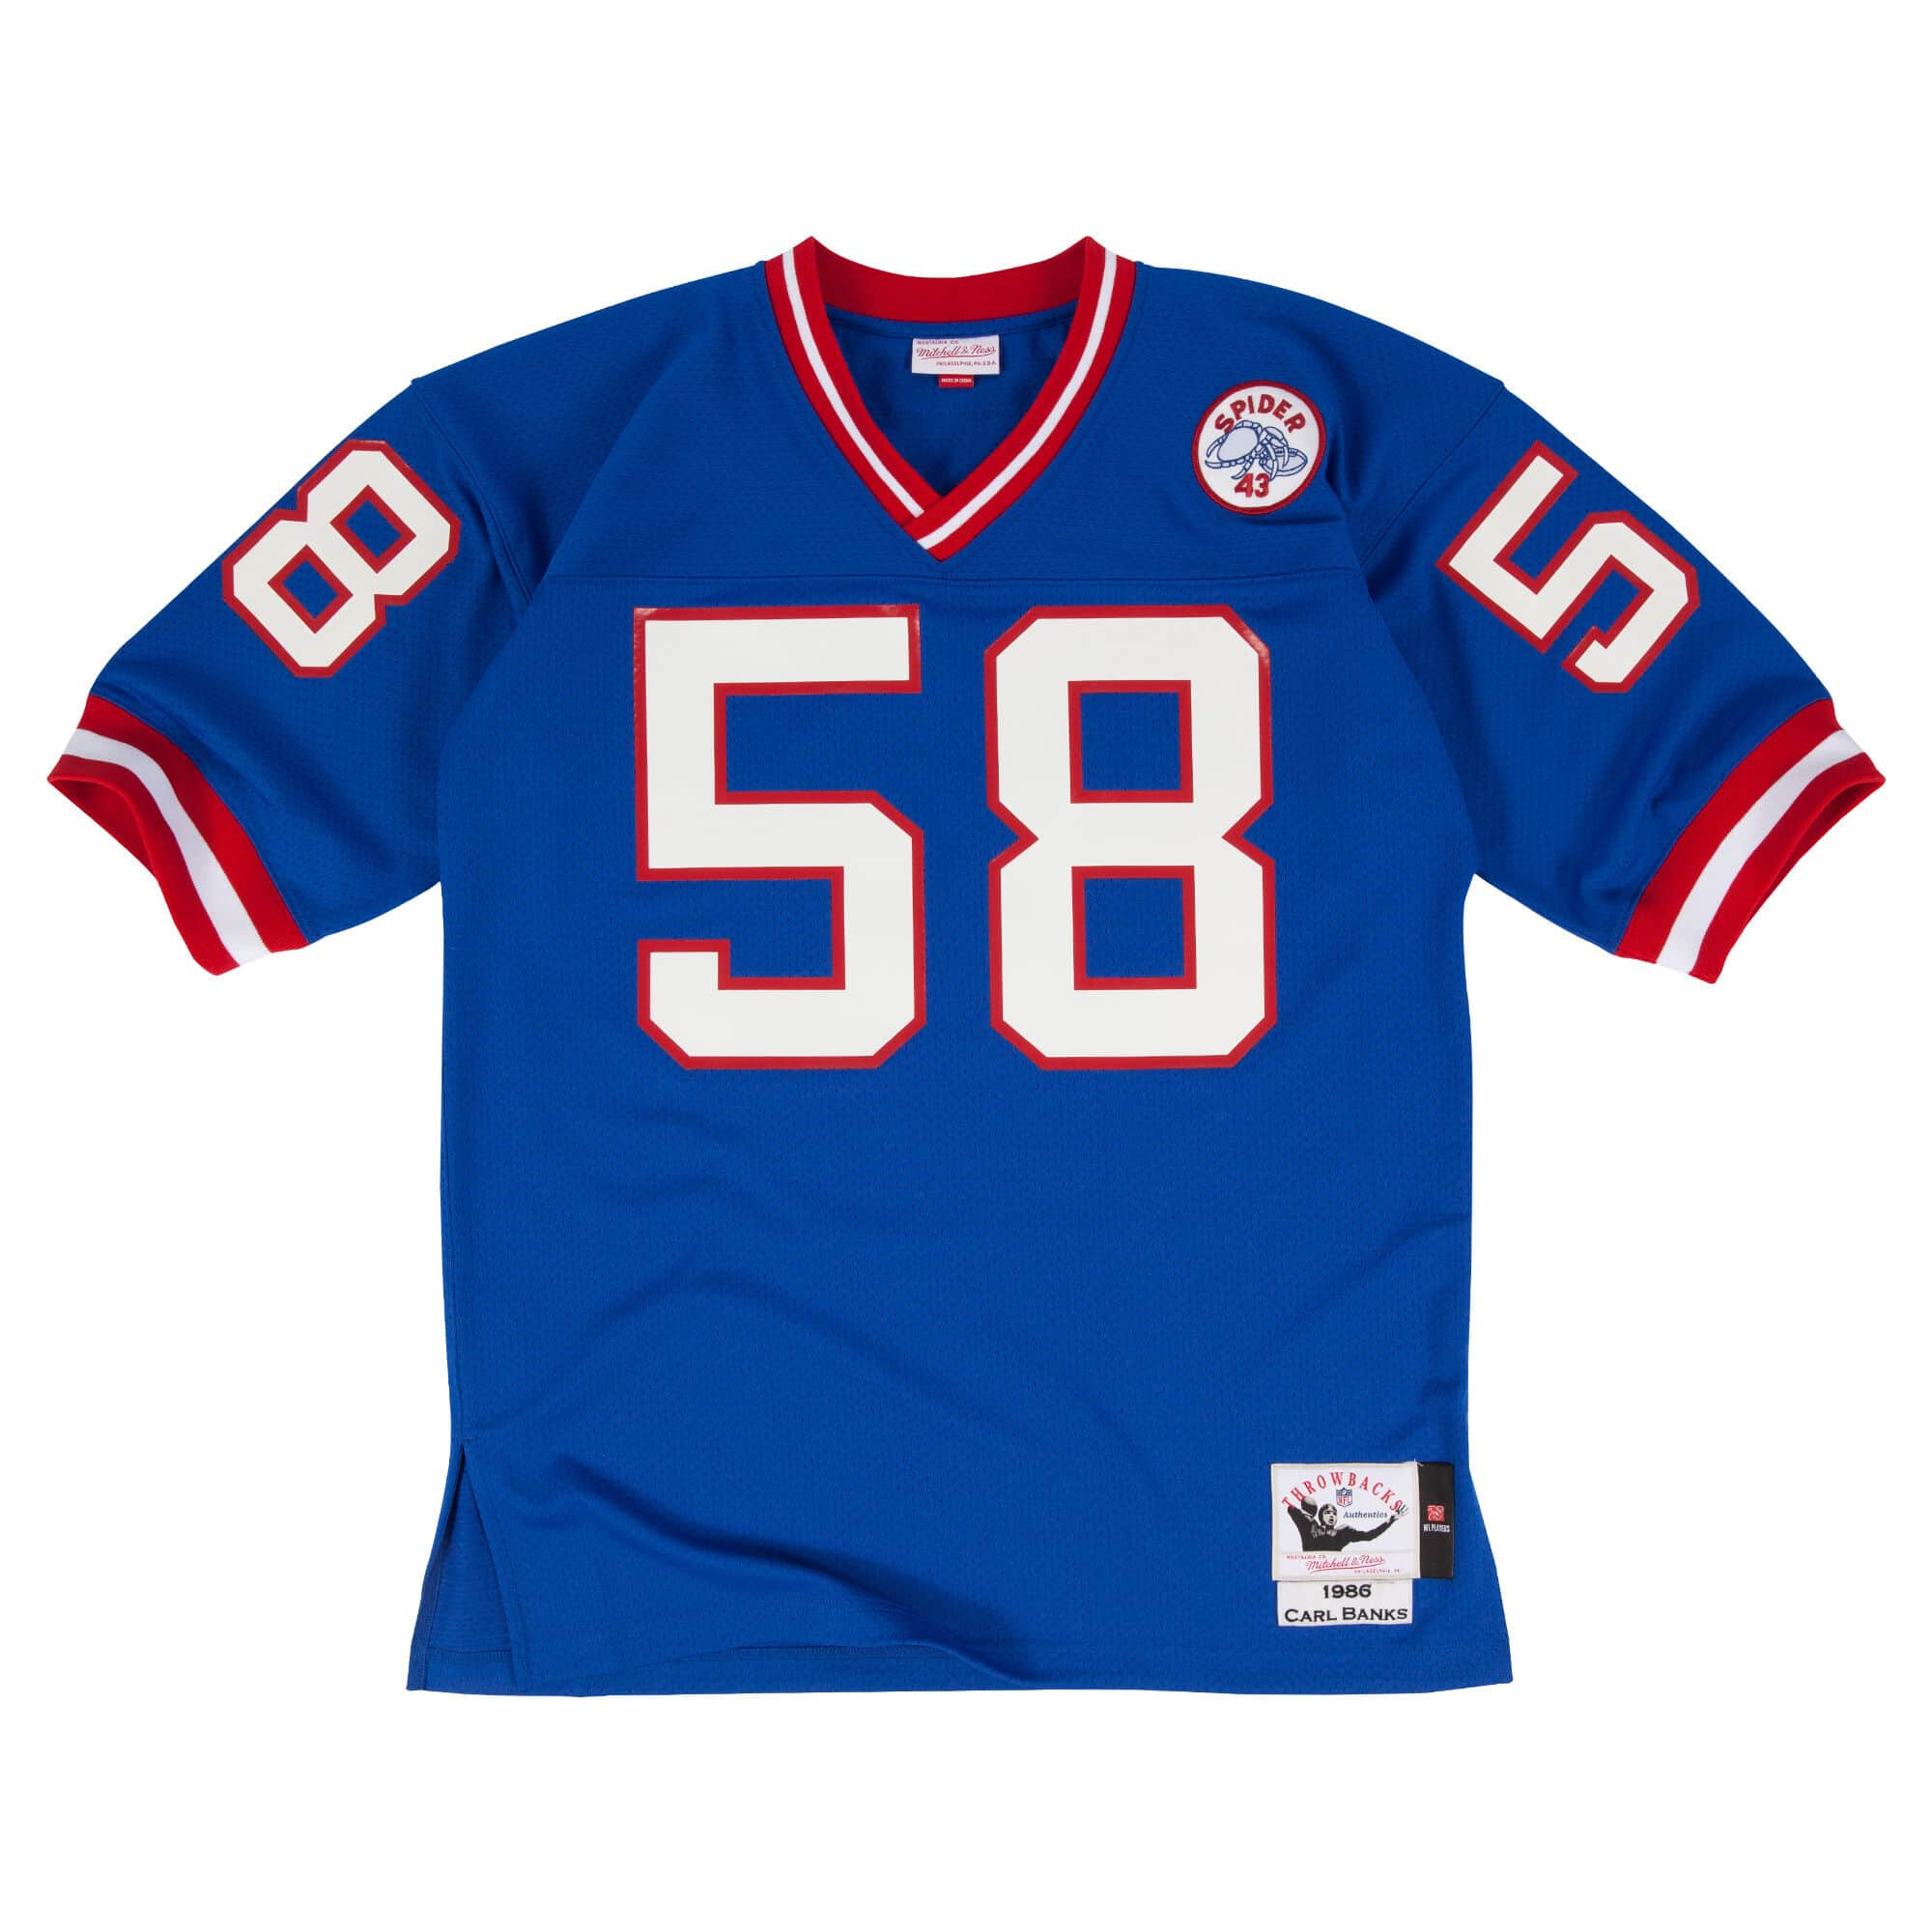 Carl Banks 1986 Authentic Jersey New York Giants